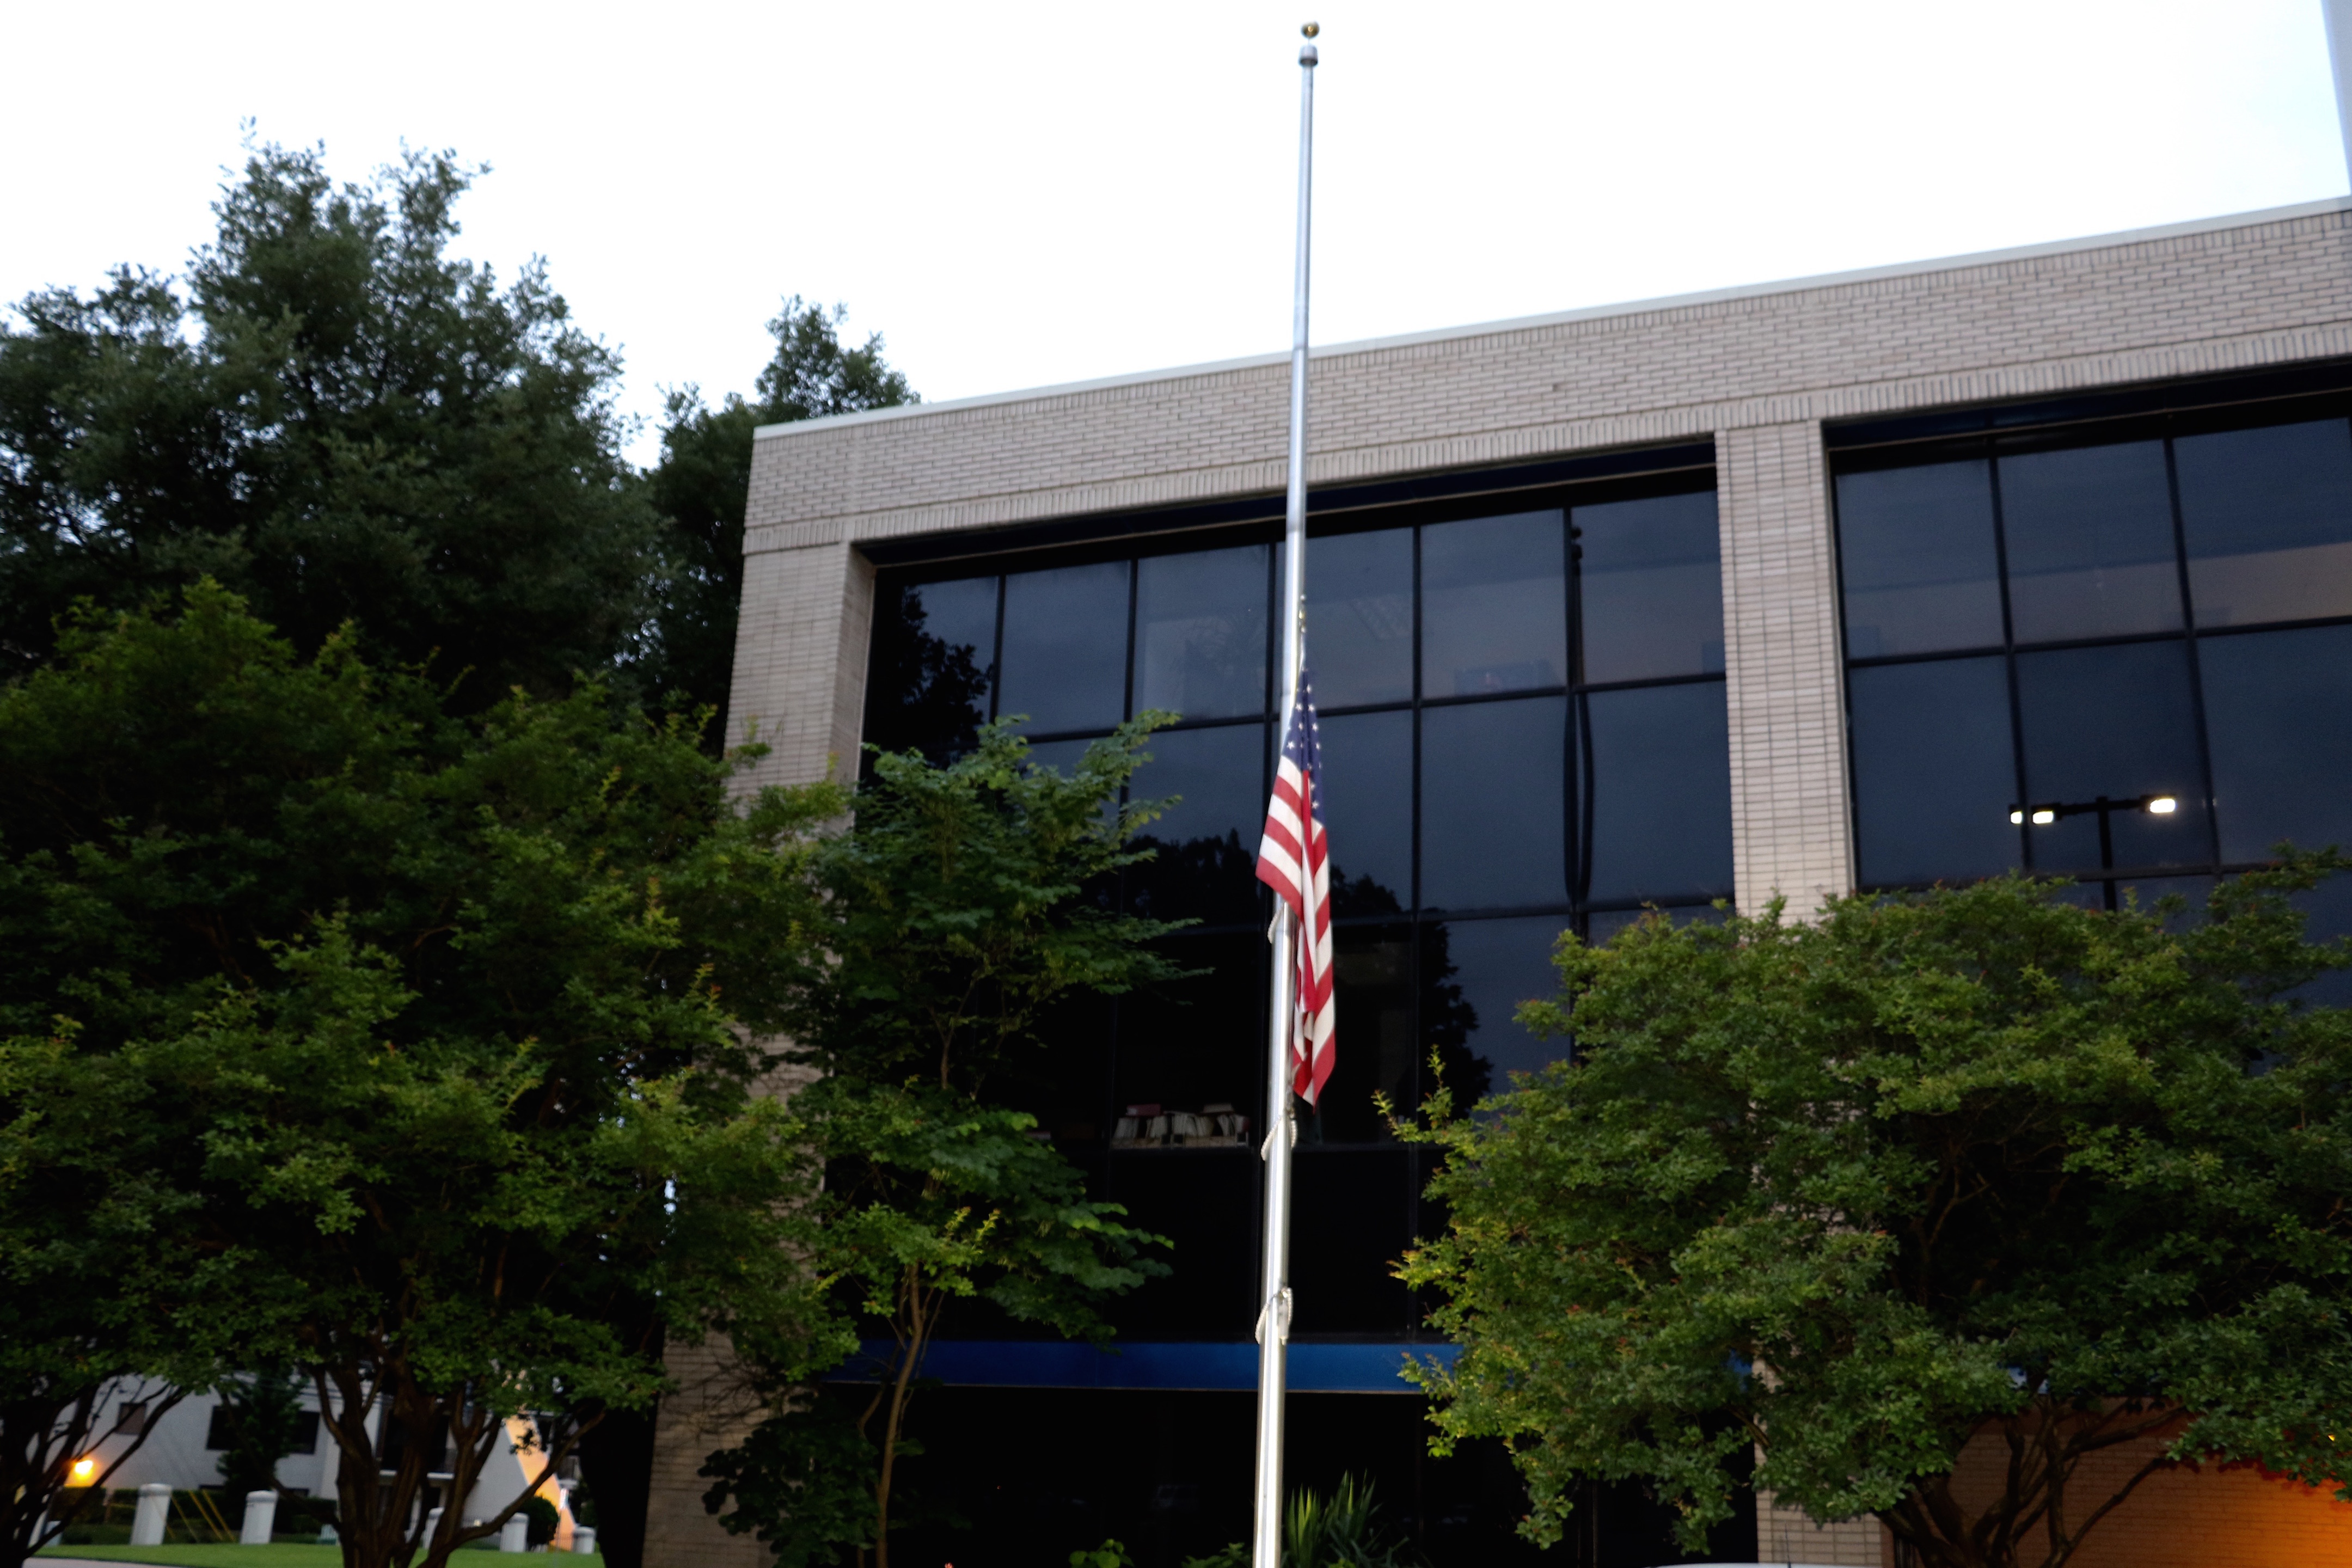 The flag at OWC's Austin facility.